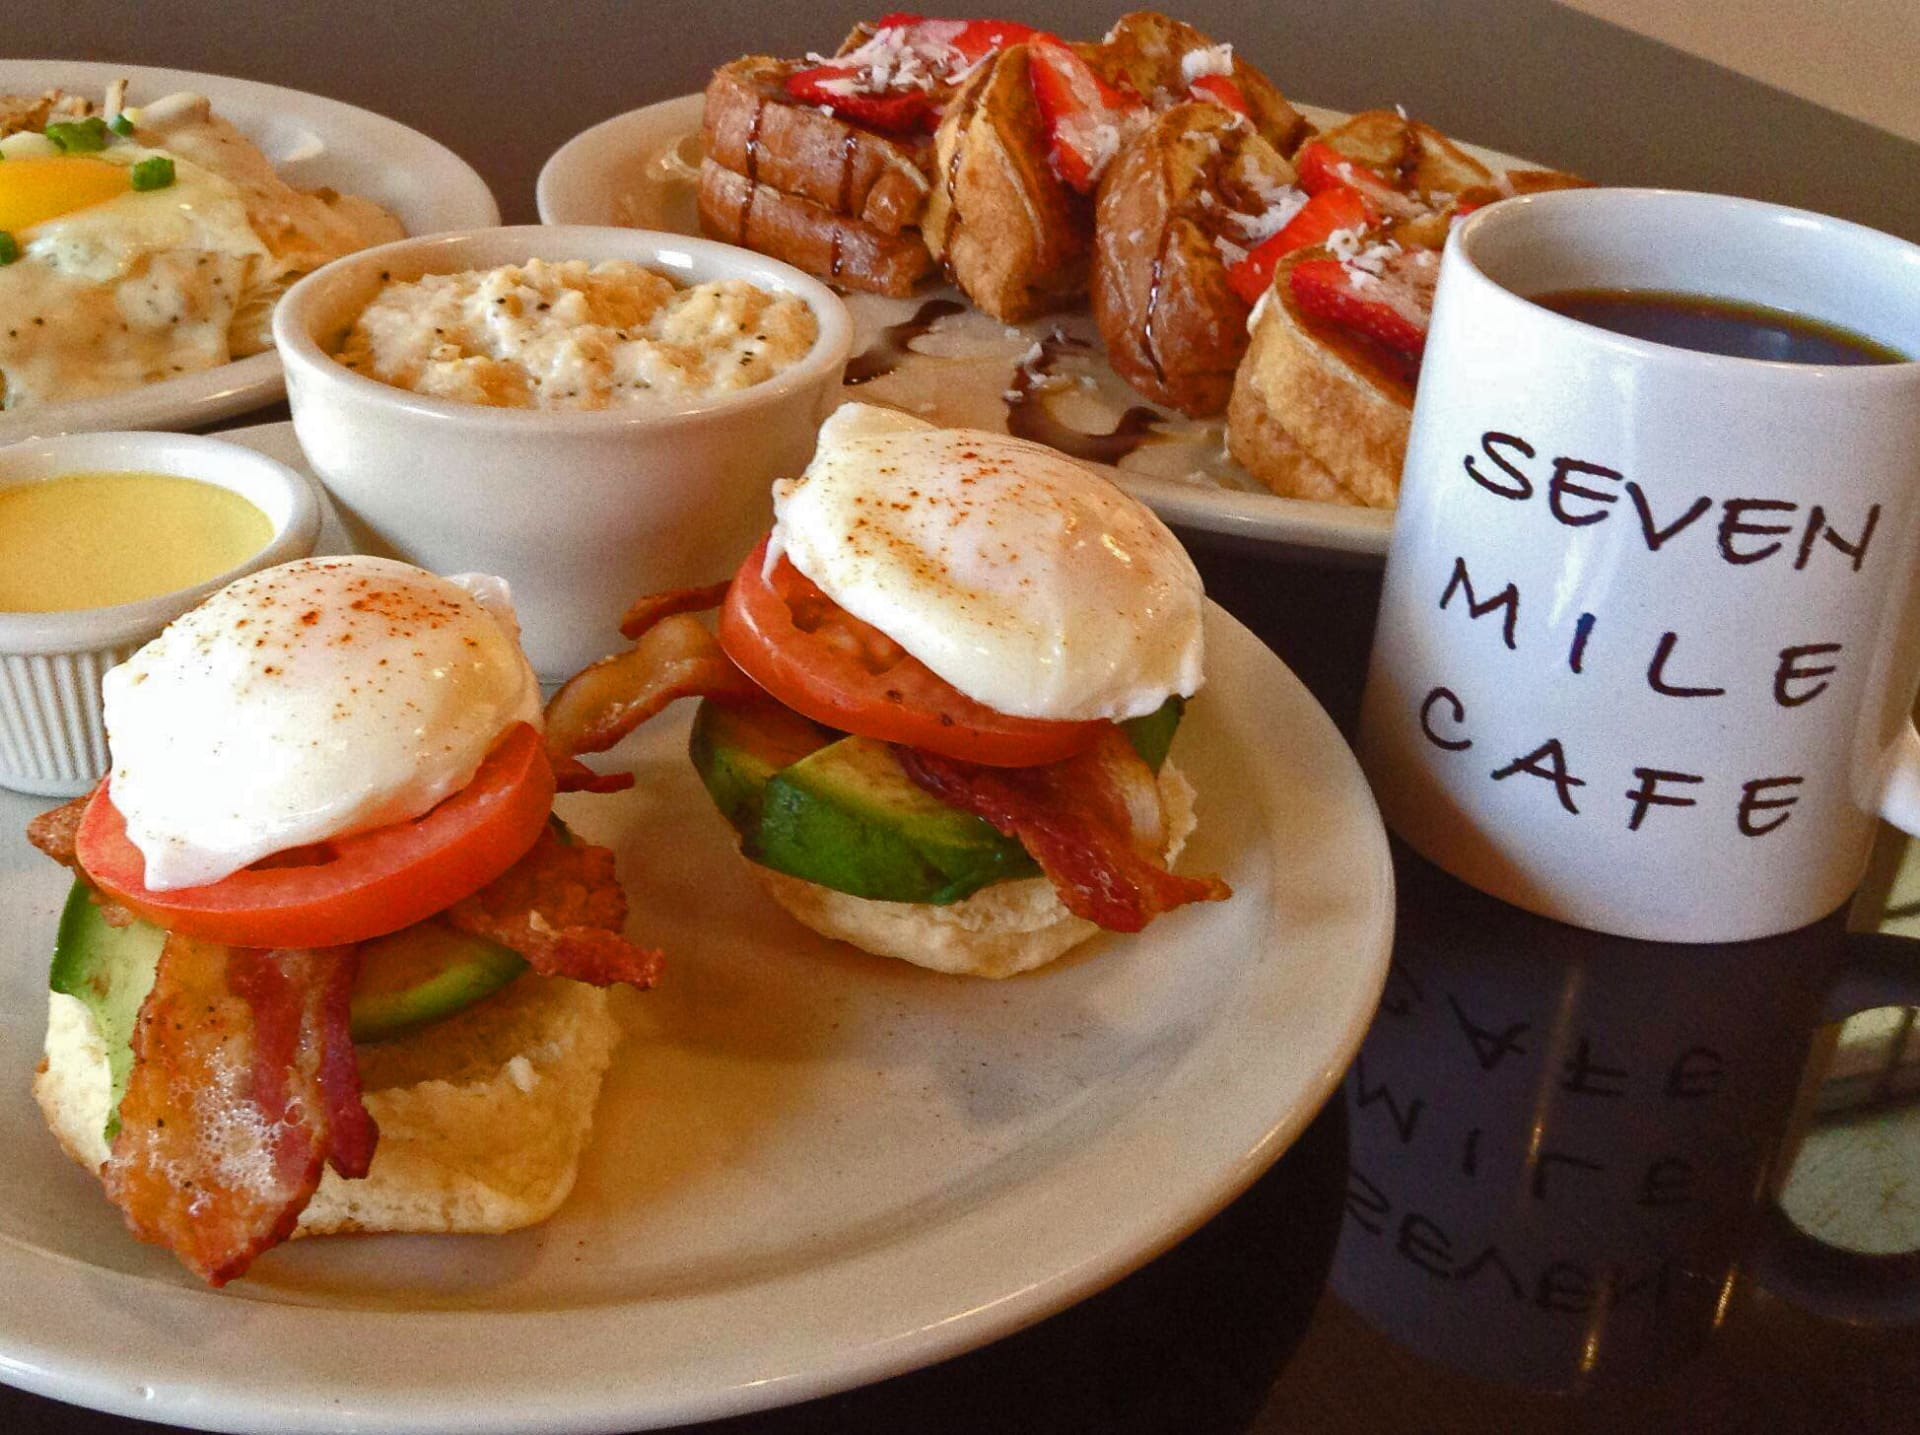 Foodie Friday DFW: Seven Mile Cafe {Highland Village, TX}